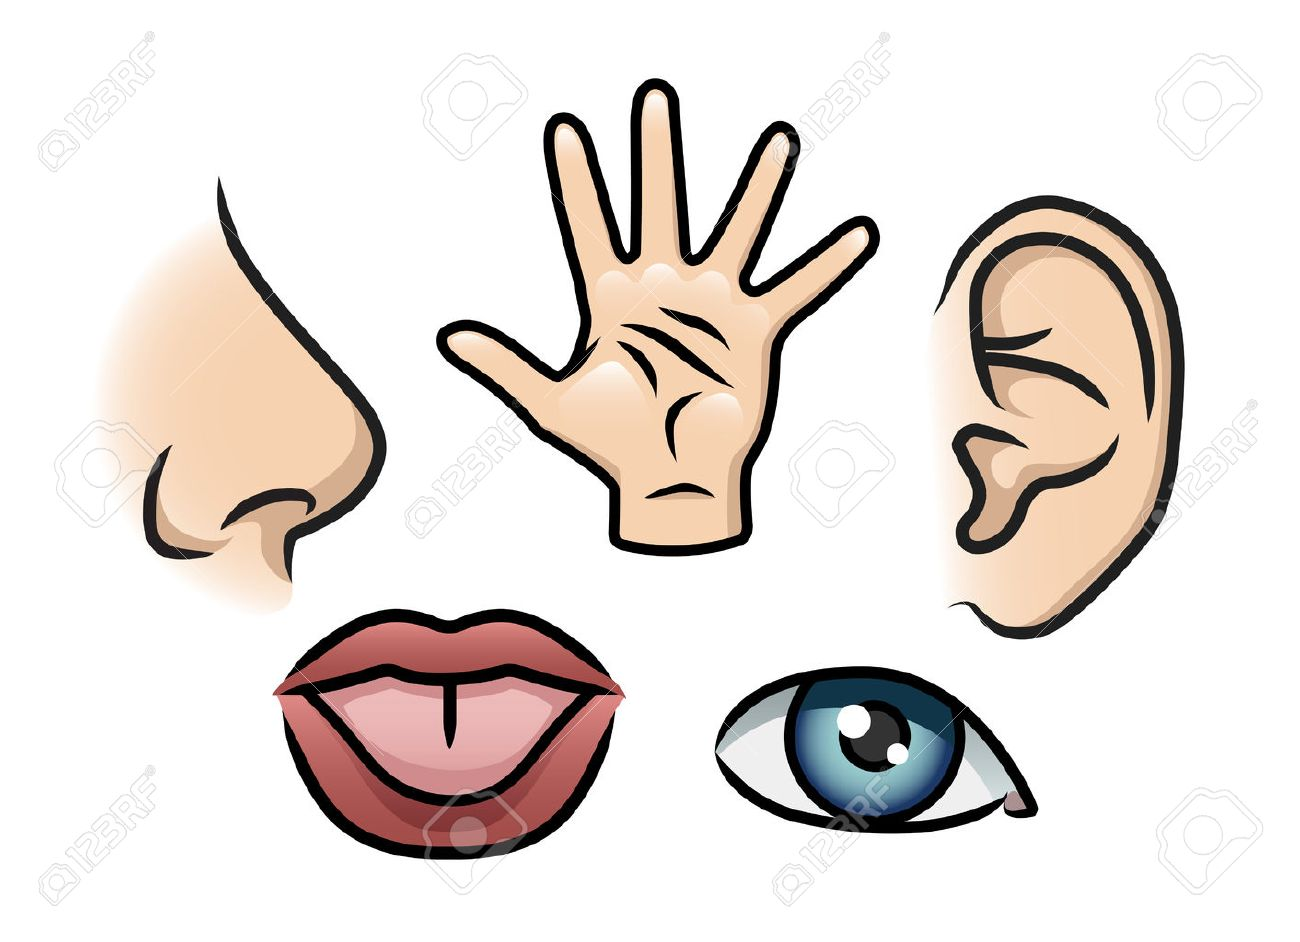 a cartoon illustration depicting the 5 senses smell touch hearing rh se 123rf com 5 senses clipart black and white